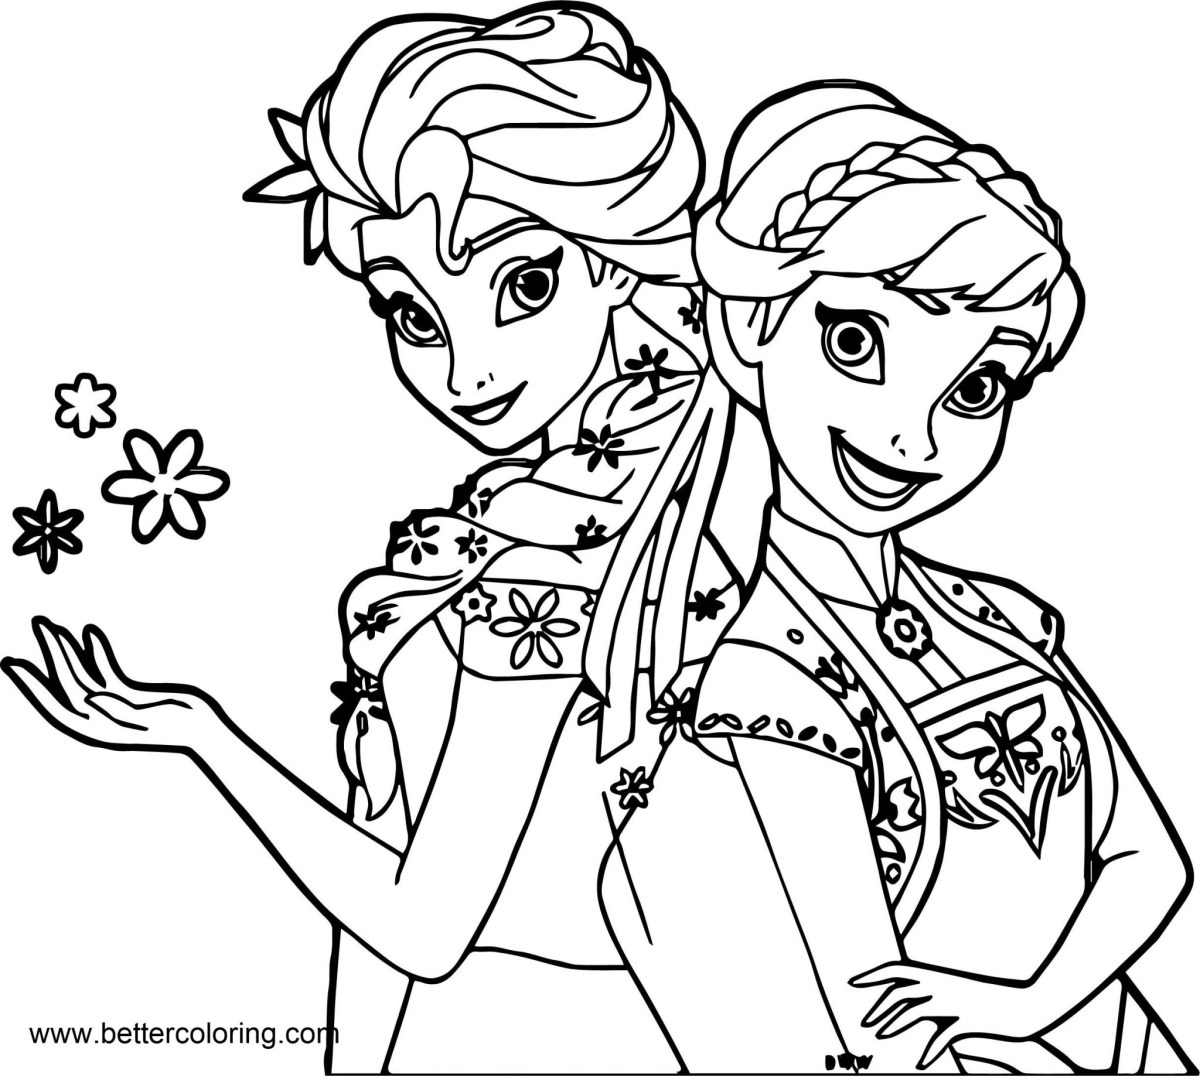 Anna Coloring Pages Frozen Elsa And Anna Coloring Pages Free